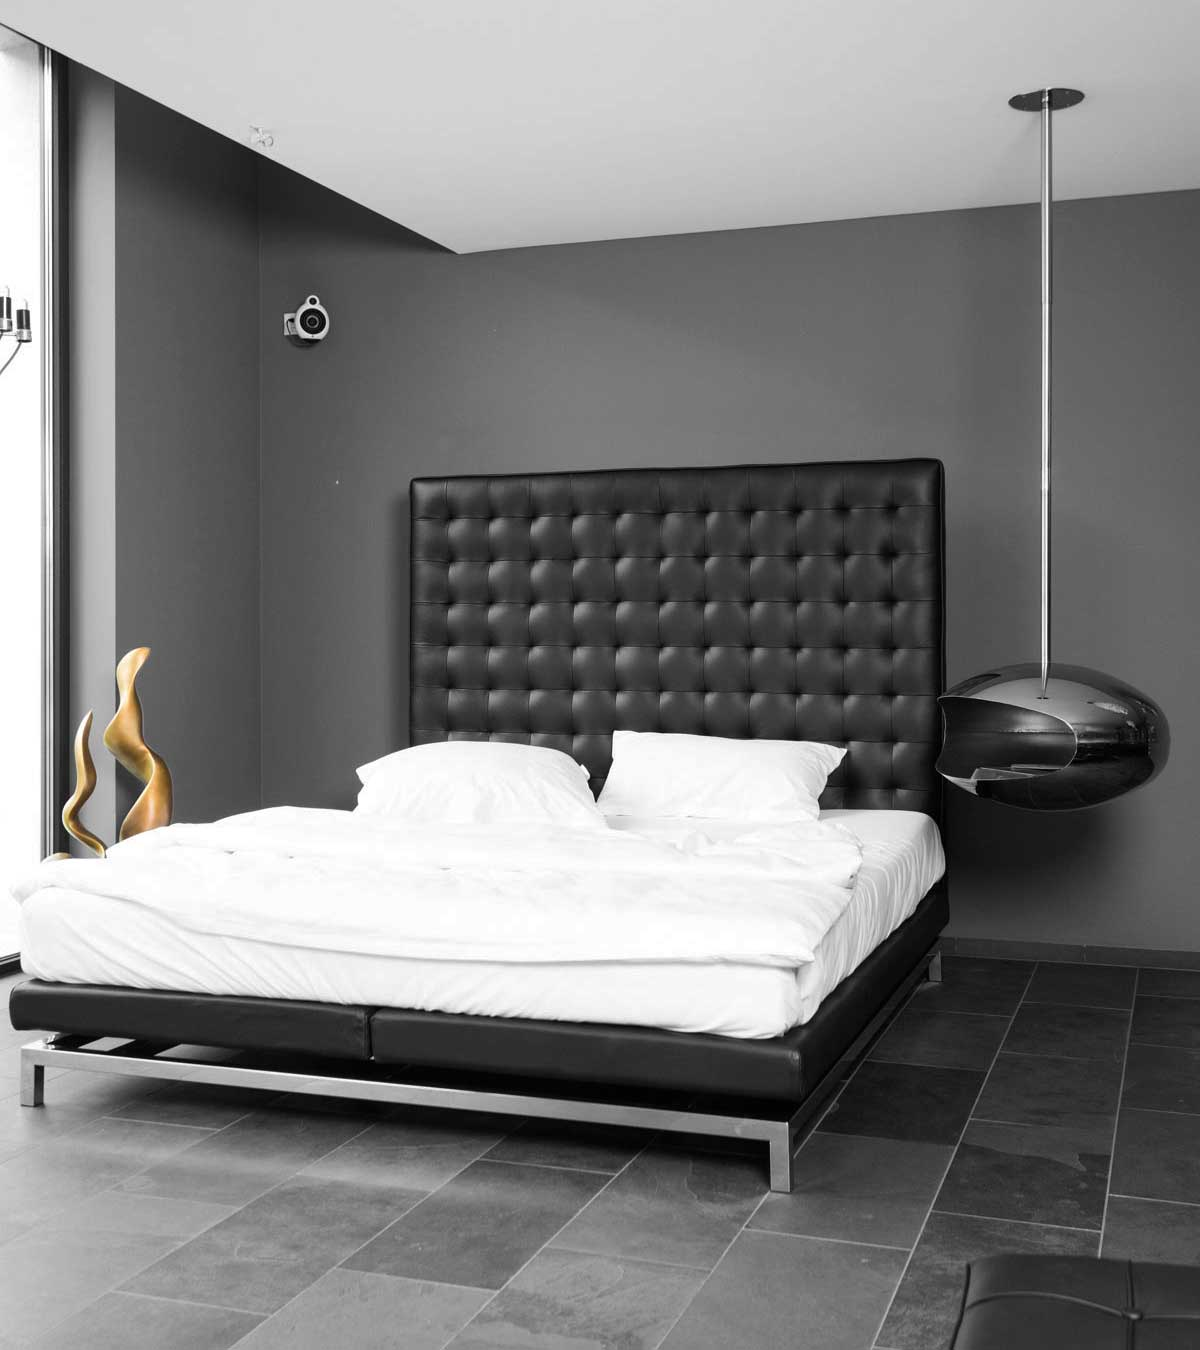 kuhfell bett auf kufen echt kuhfell bett neuerraum. Black Bedroom Furniture Sets. Home Design Ideas